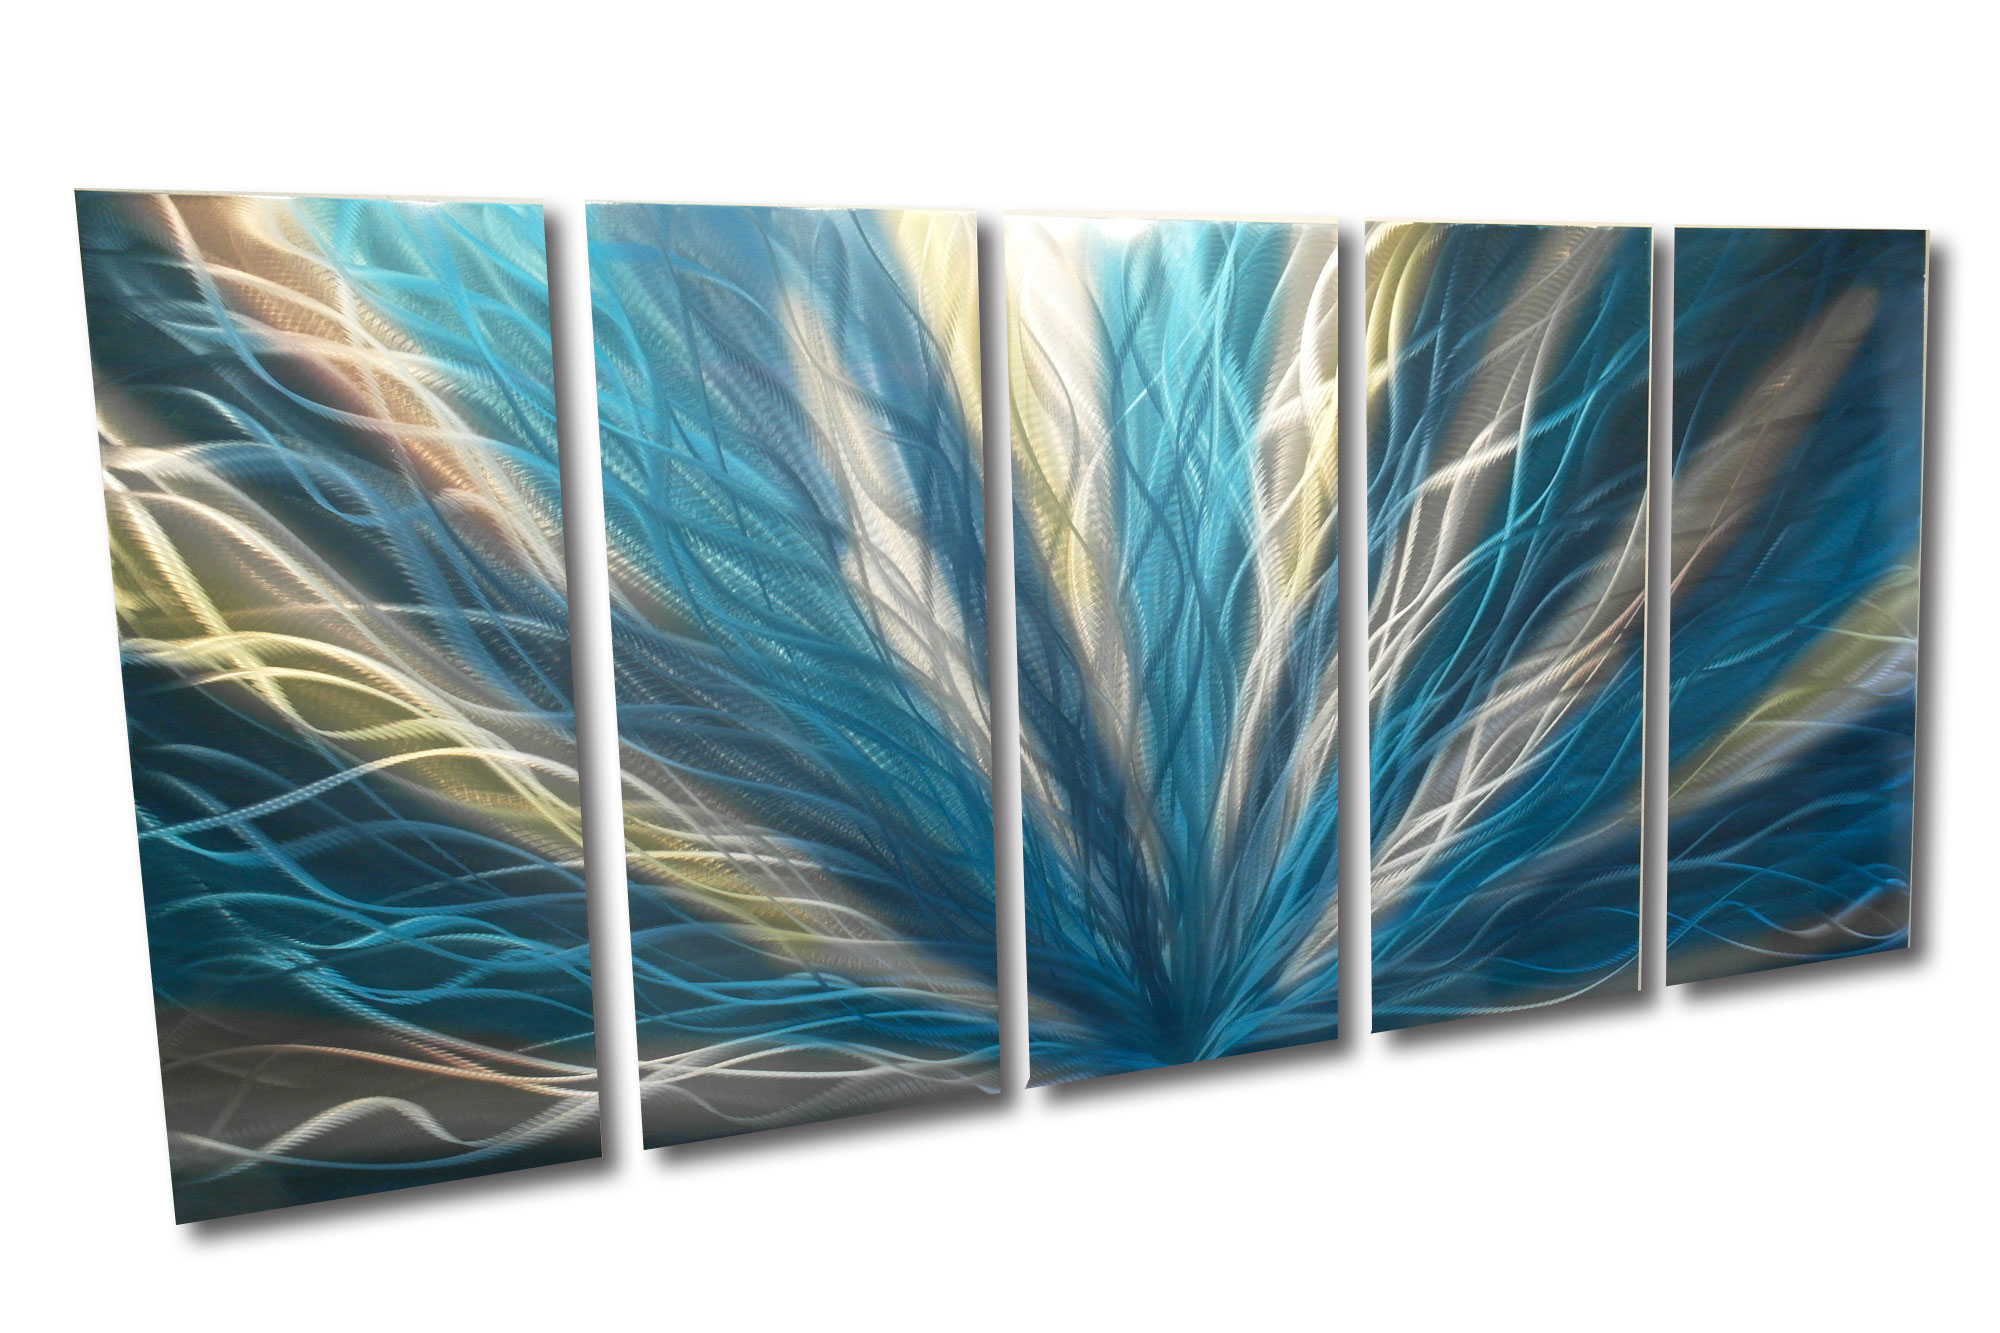 Radiance teal 36x79 metal wall art abstract sculpture for Teal wall art